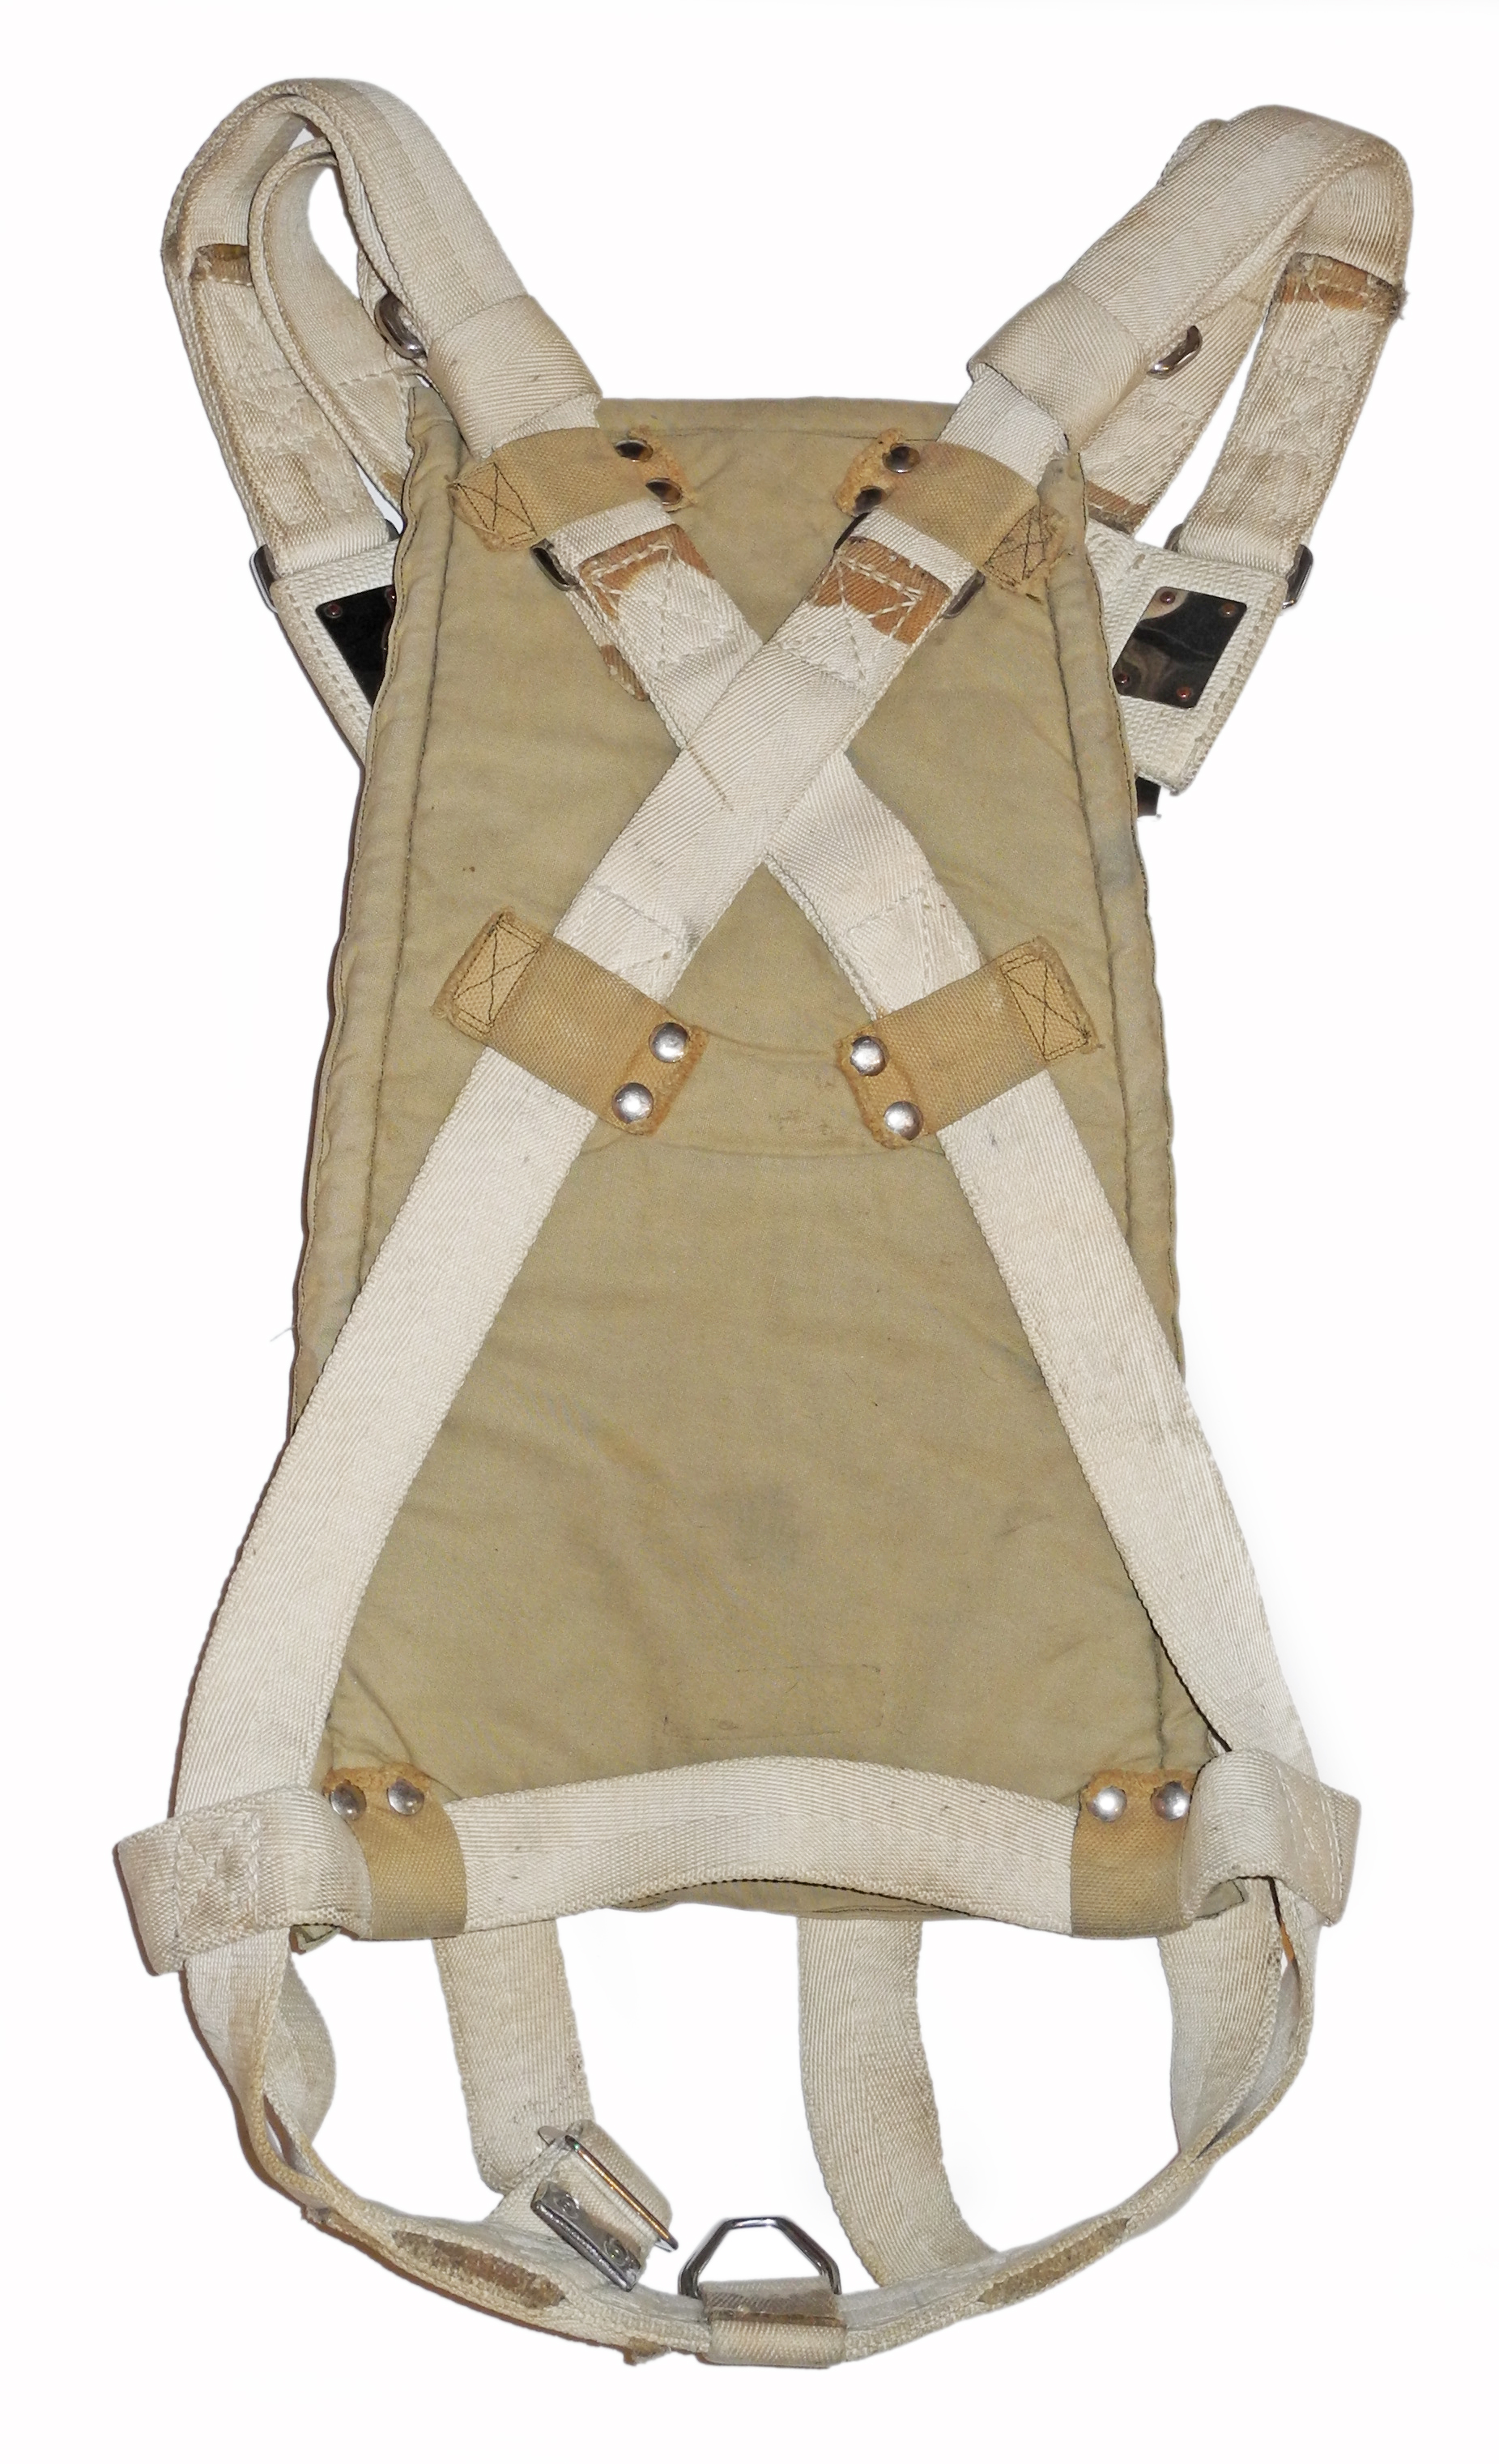 RAF/RCAF observer parachute harness dated 3/43